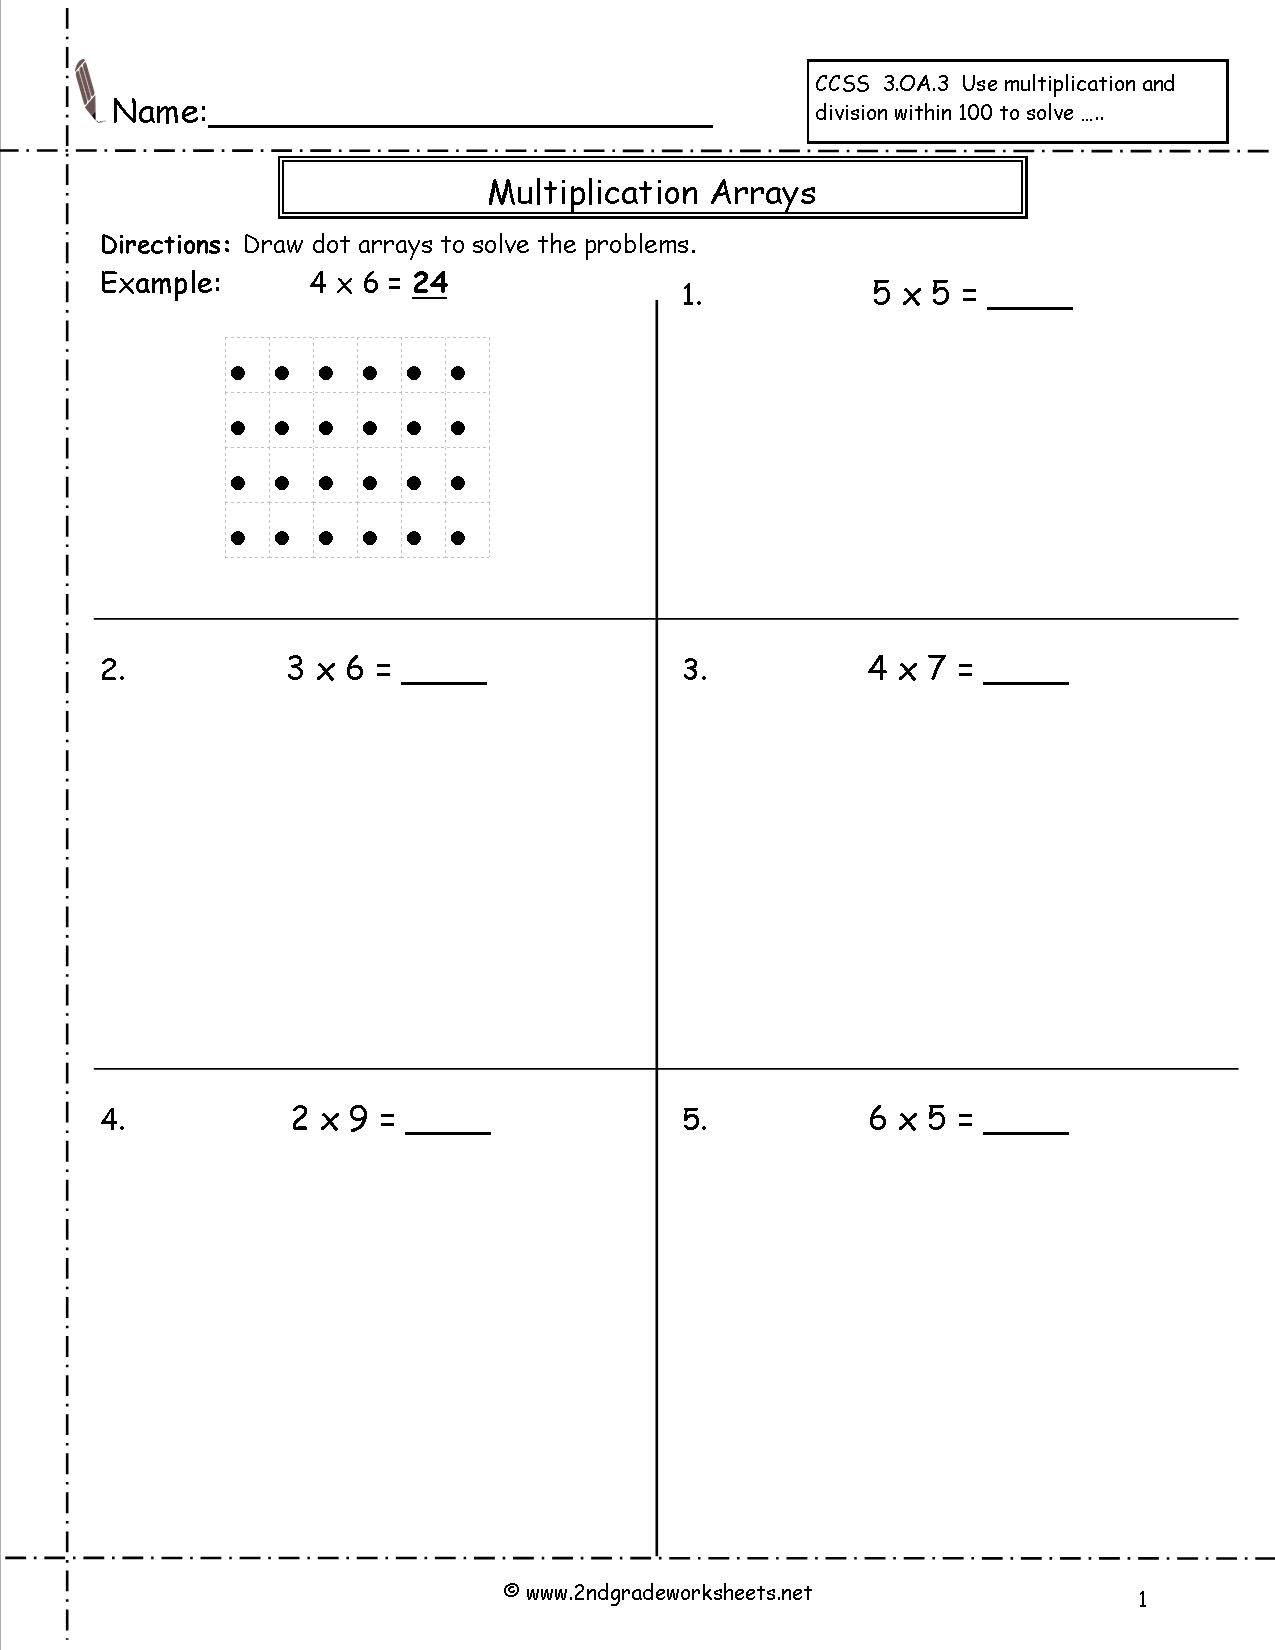 multiplication array worksheets  temporary board  pinterest  multiplication array worksheets matrix multiplication worksheet also multiplication division addition and subtraction worksheets mixed number addition and subtraction worksheets